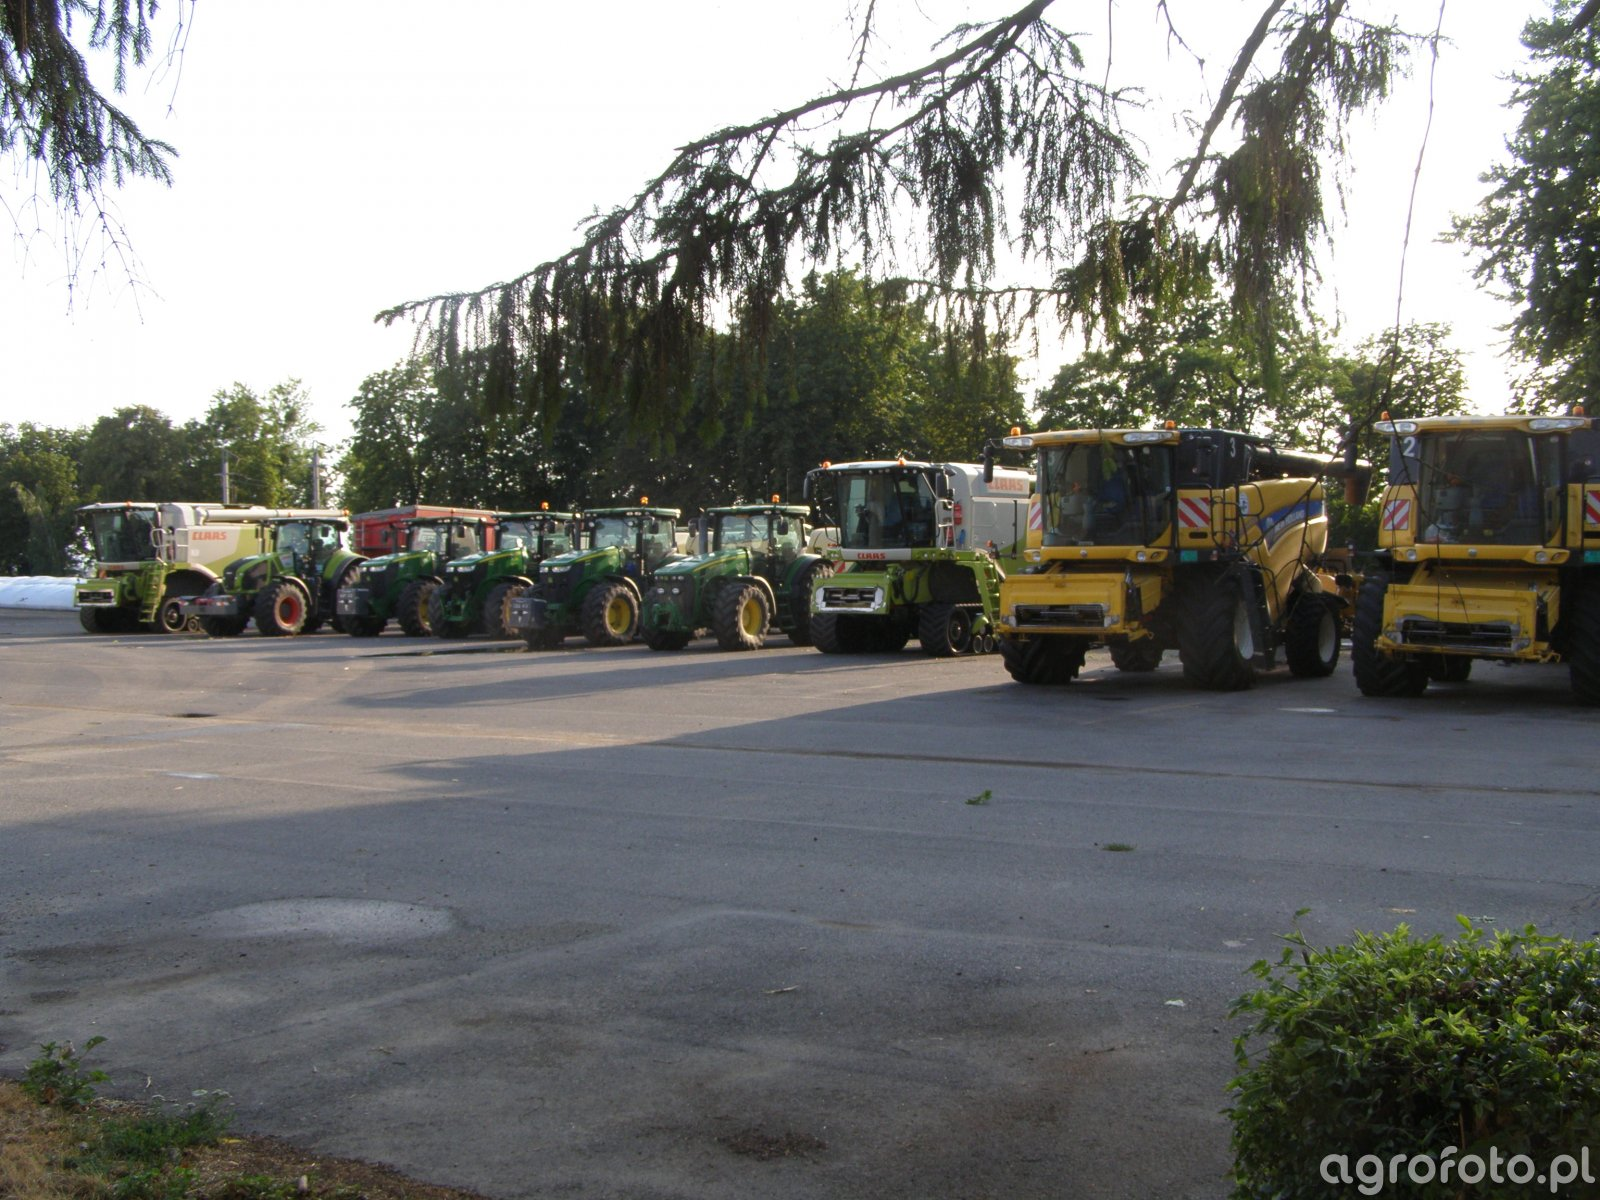 Claas , John Deere , New Holland